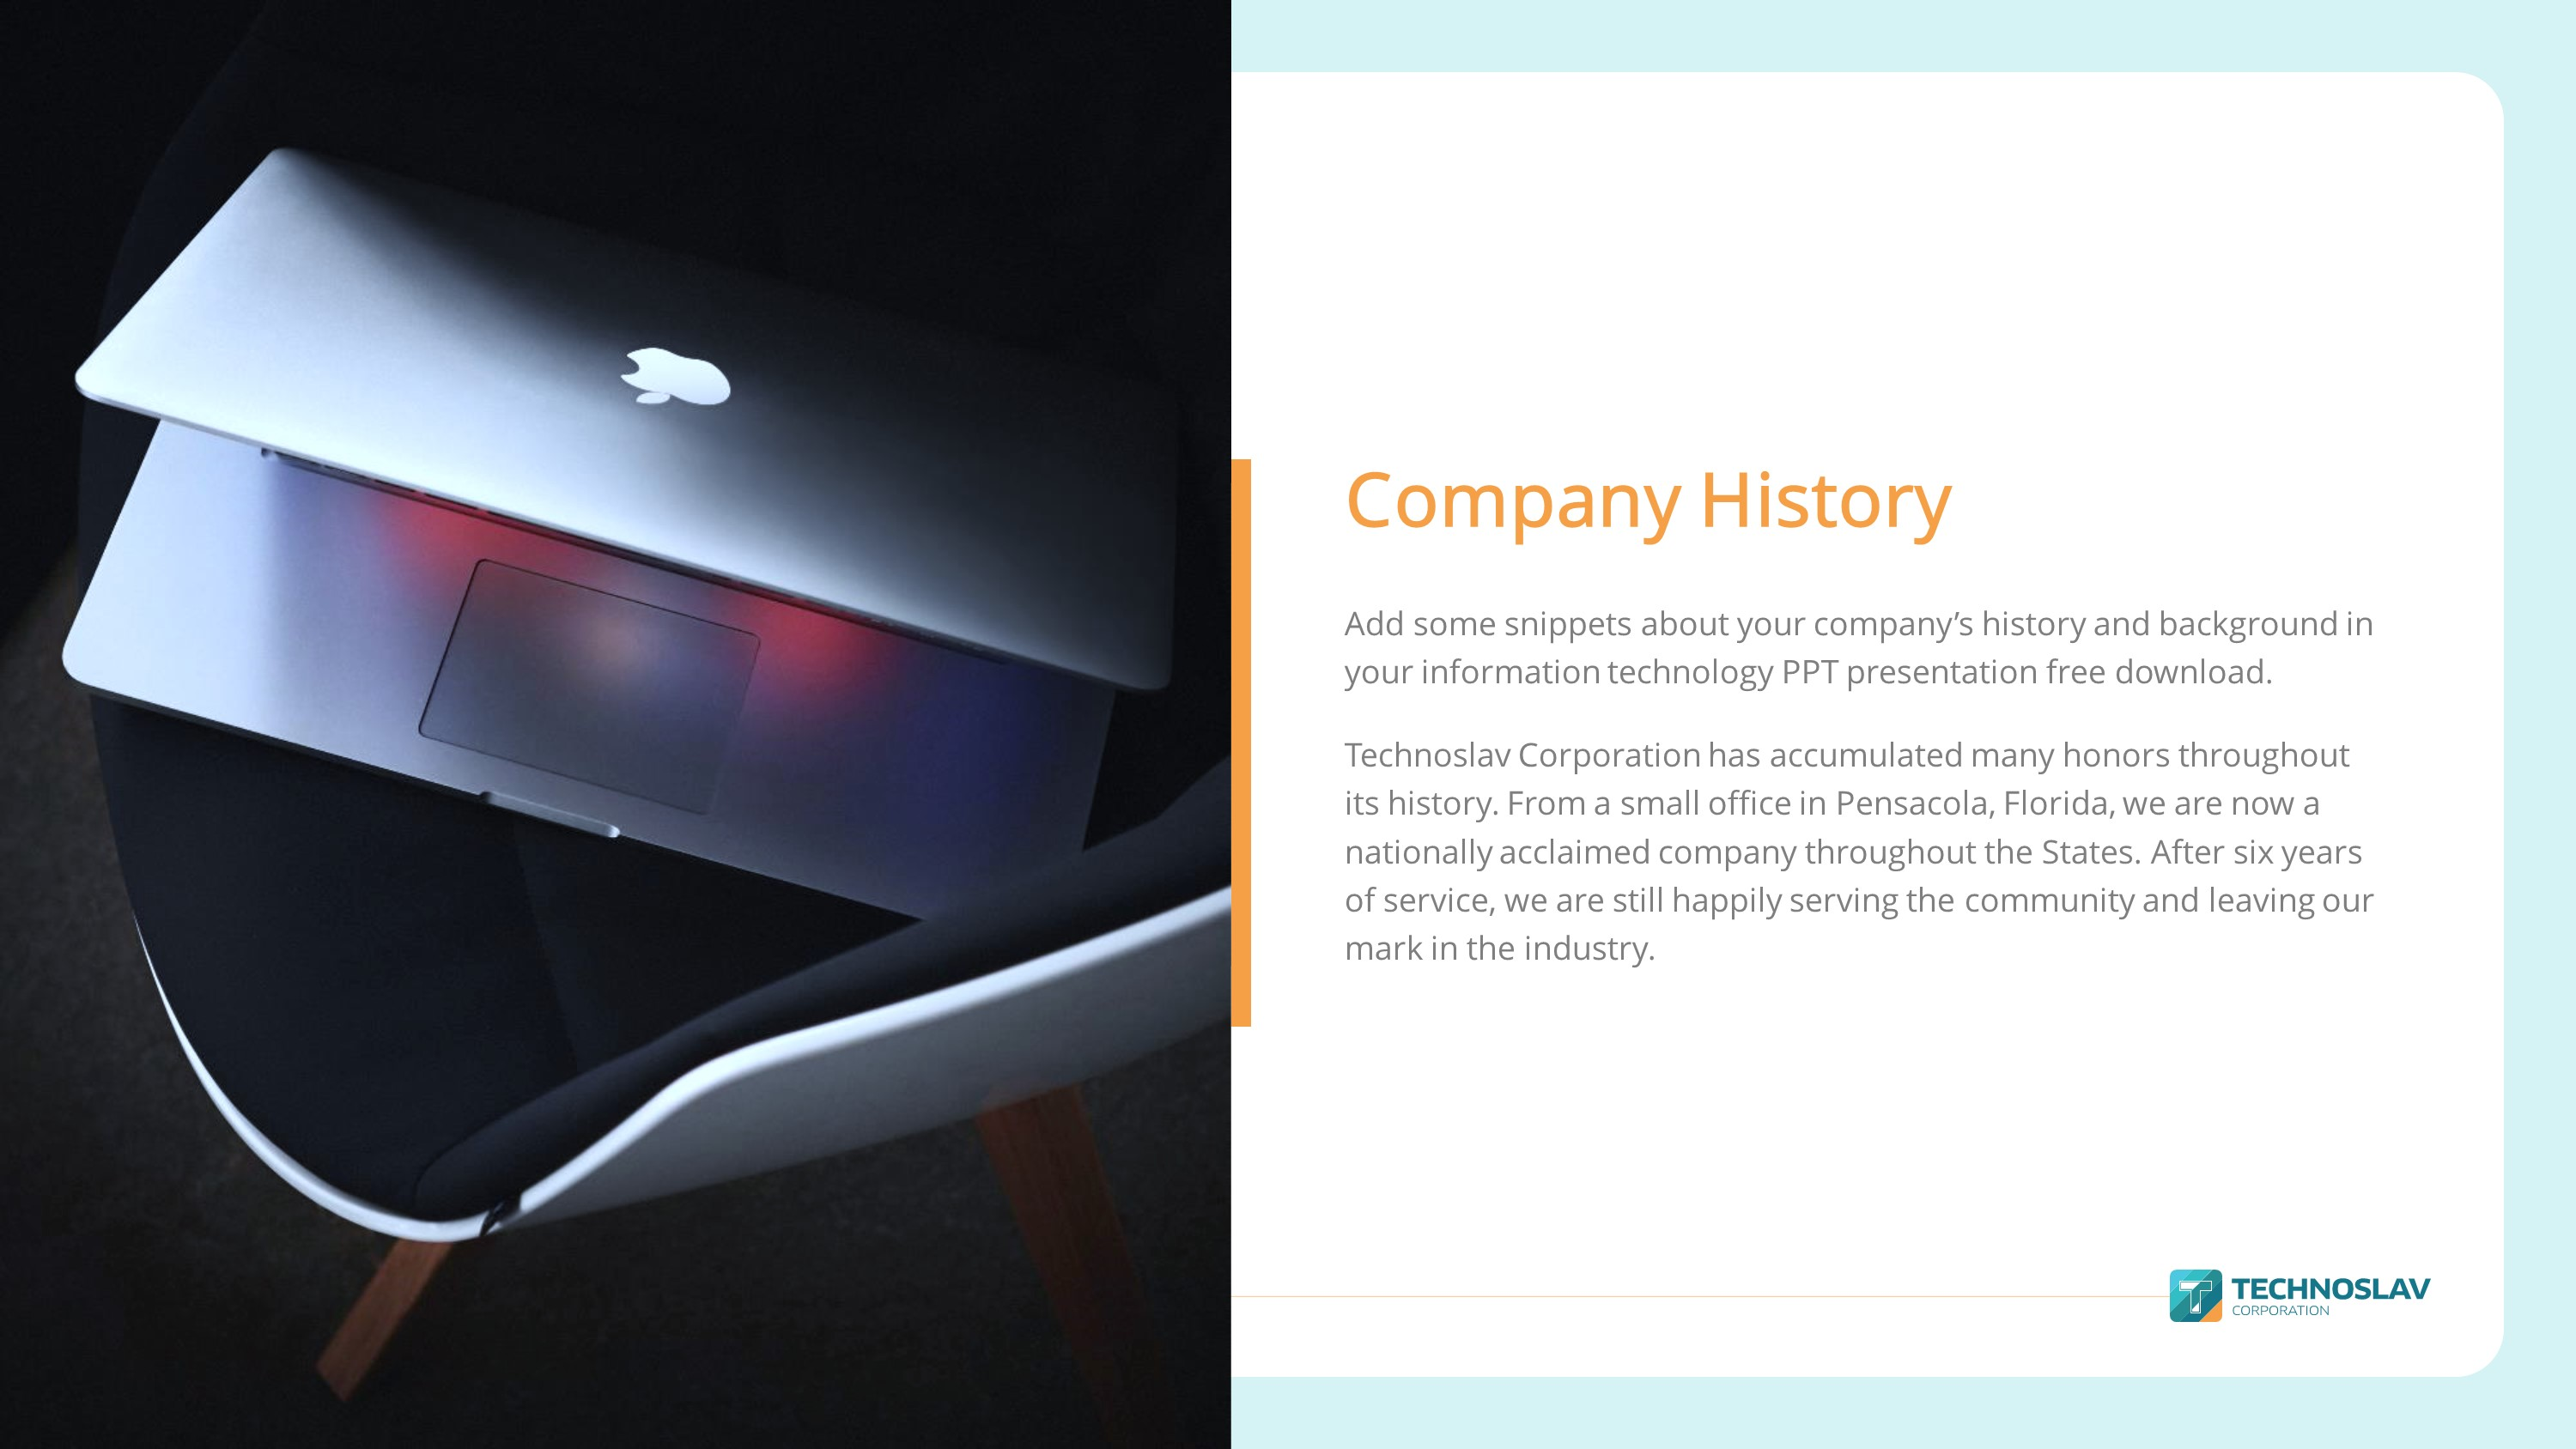 Information Technology Premium Powerpoint Template